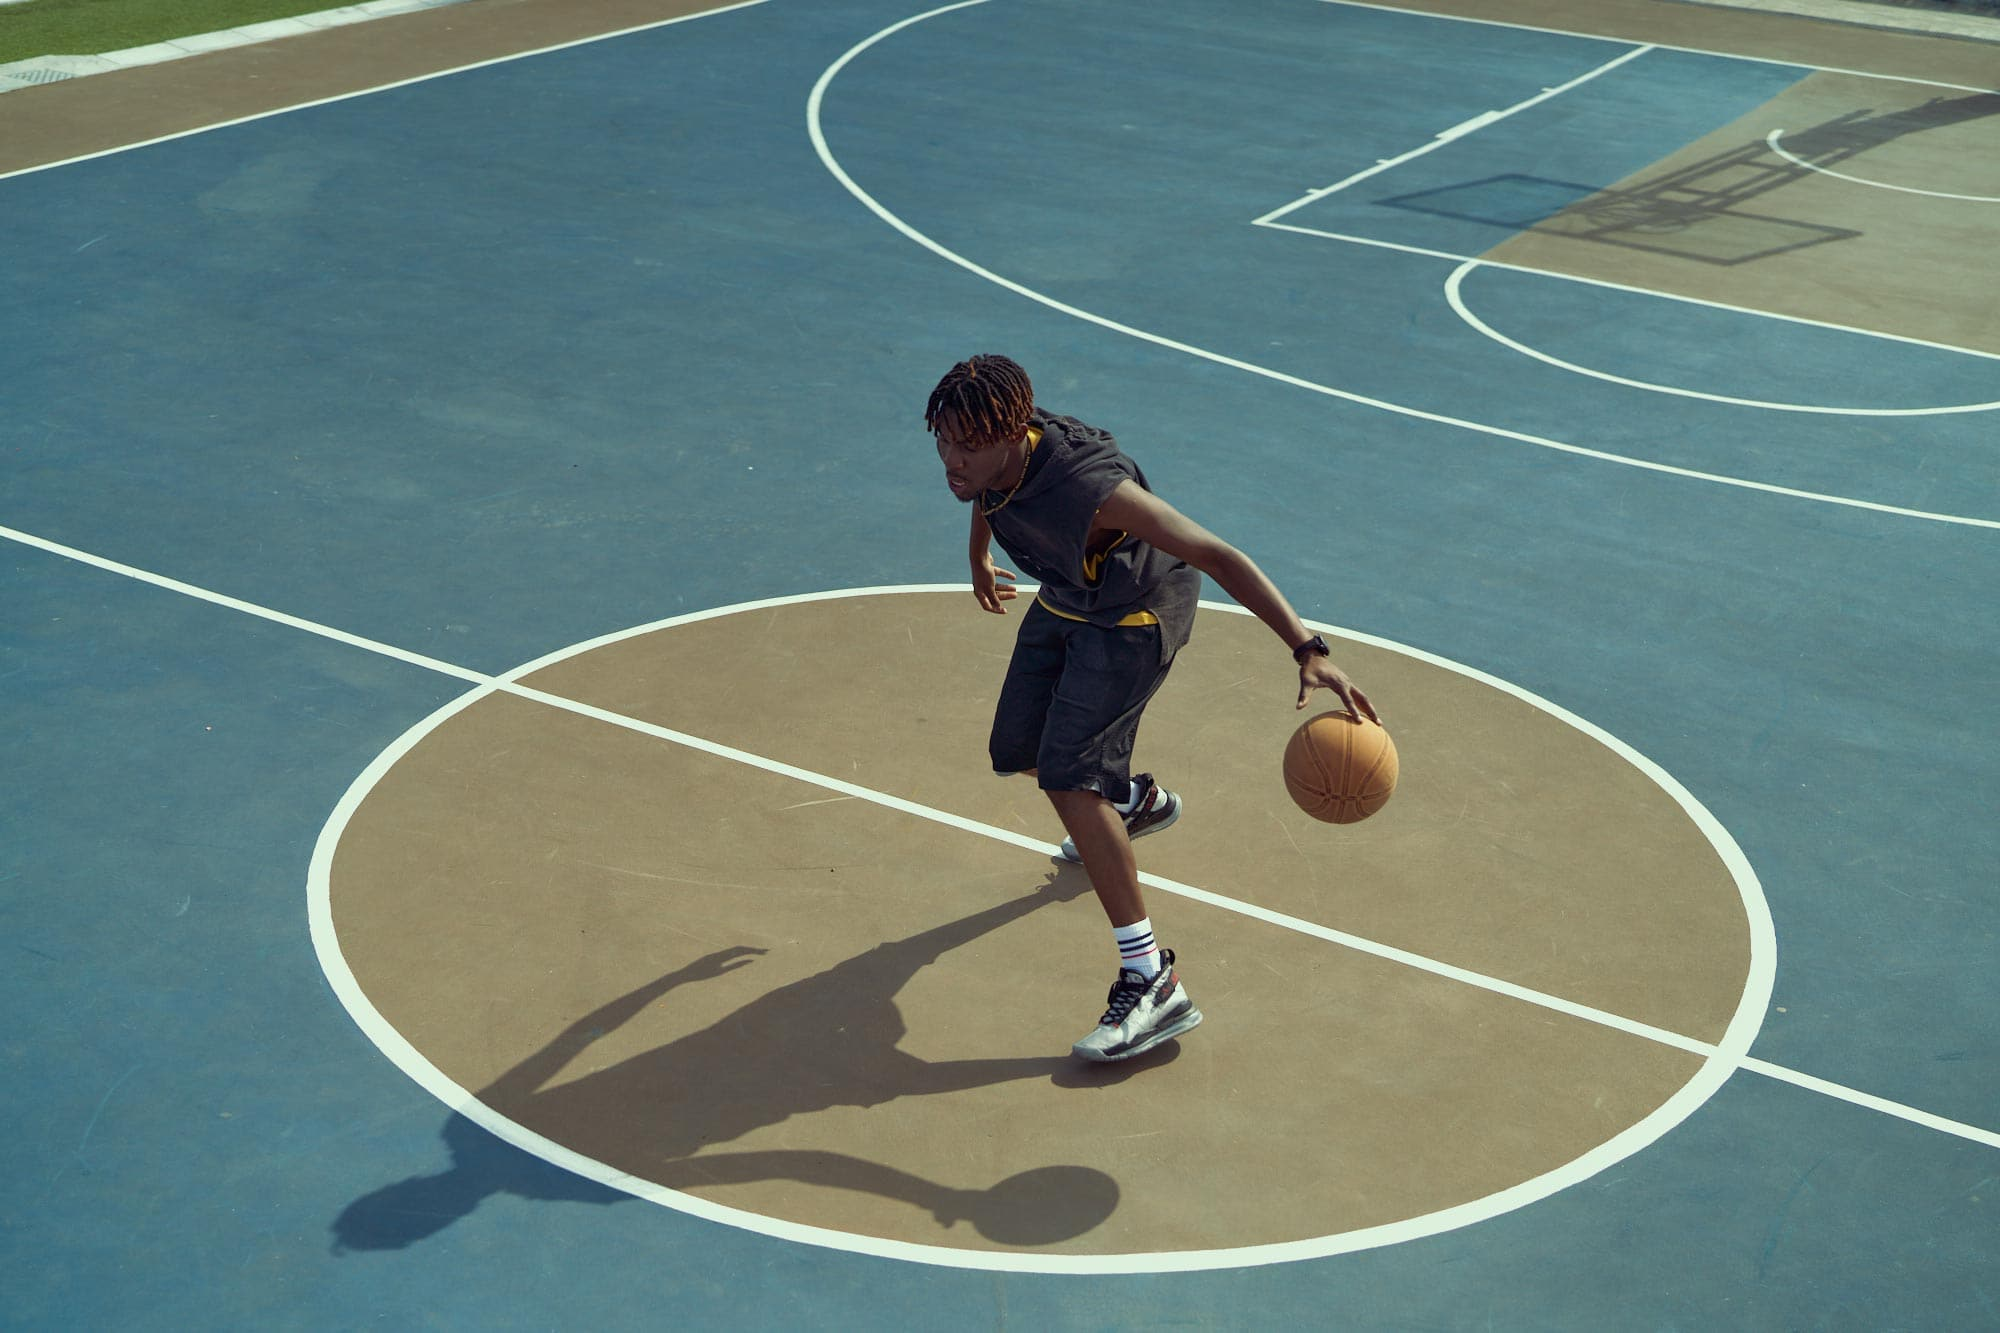 tissot t-touch swiss watch print campaign with basketball player on hard court using morning lighting